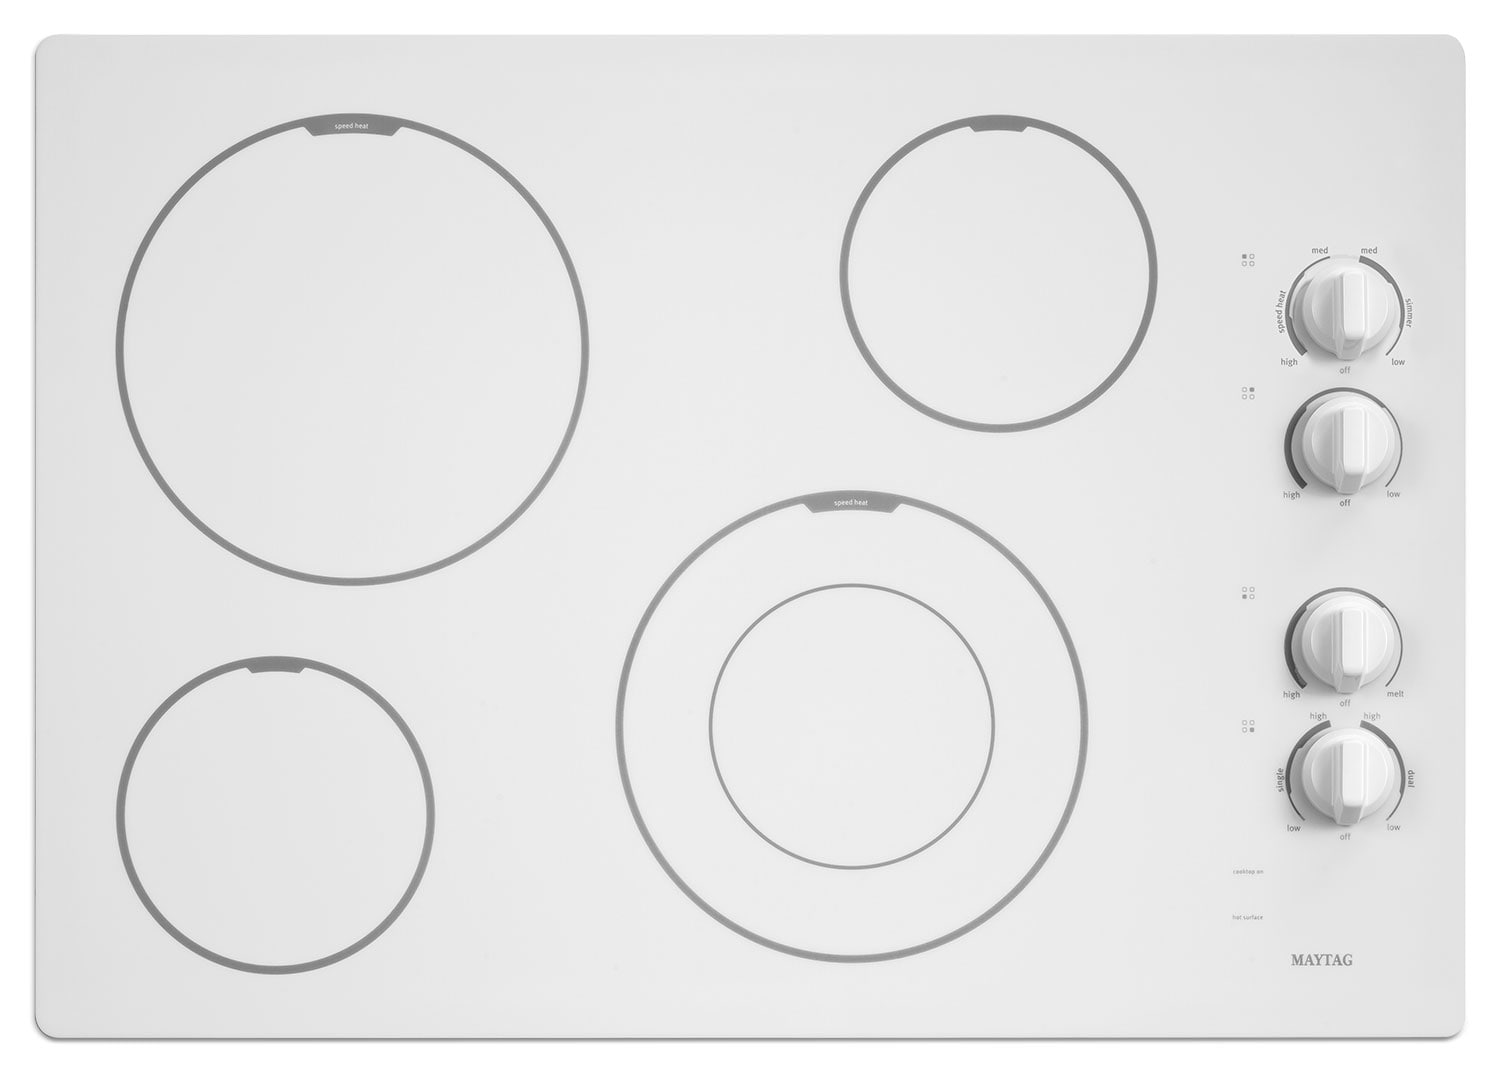 Maytag Electric Cooktop MEC7430BW